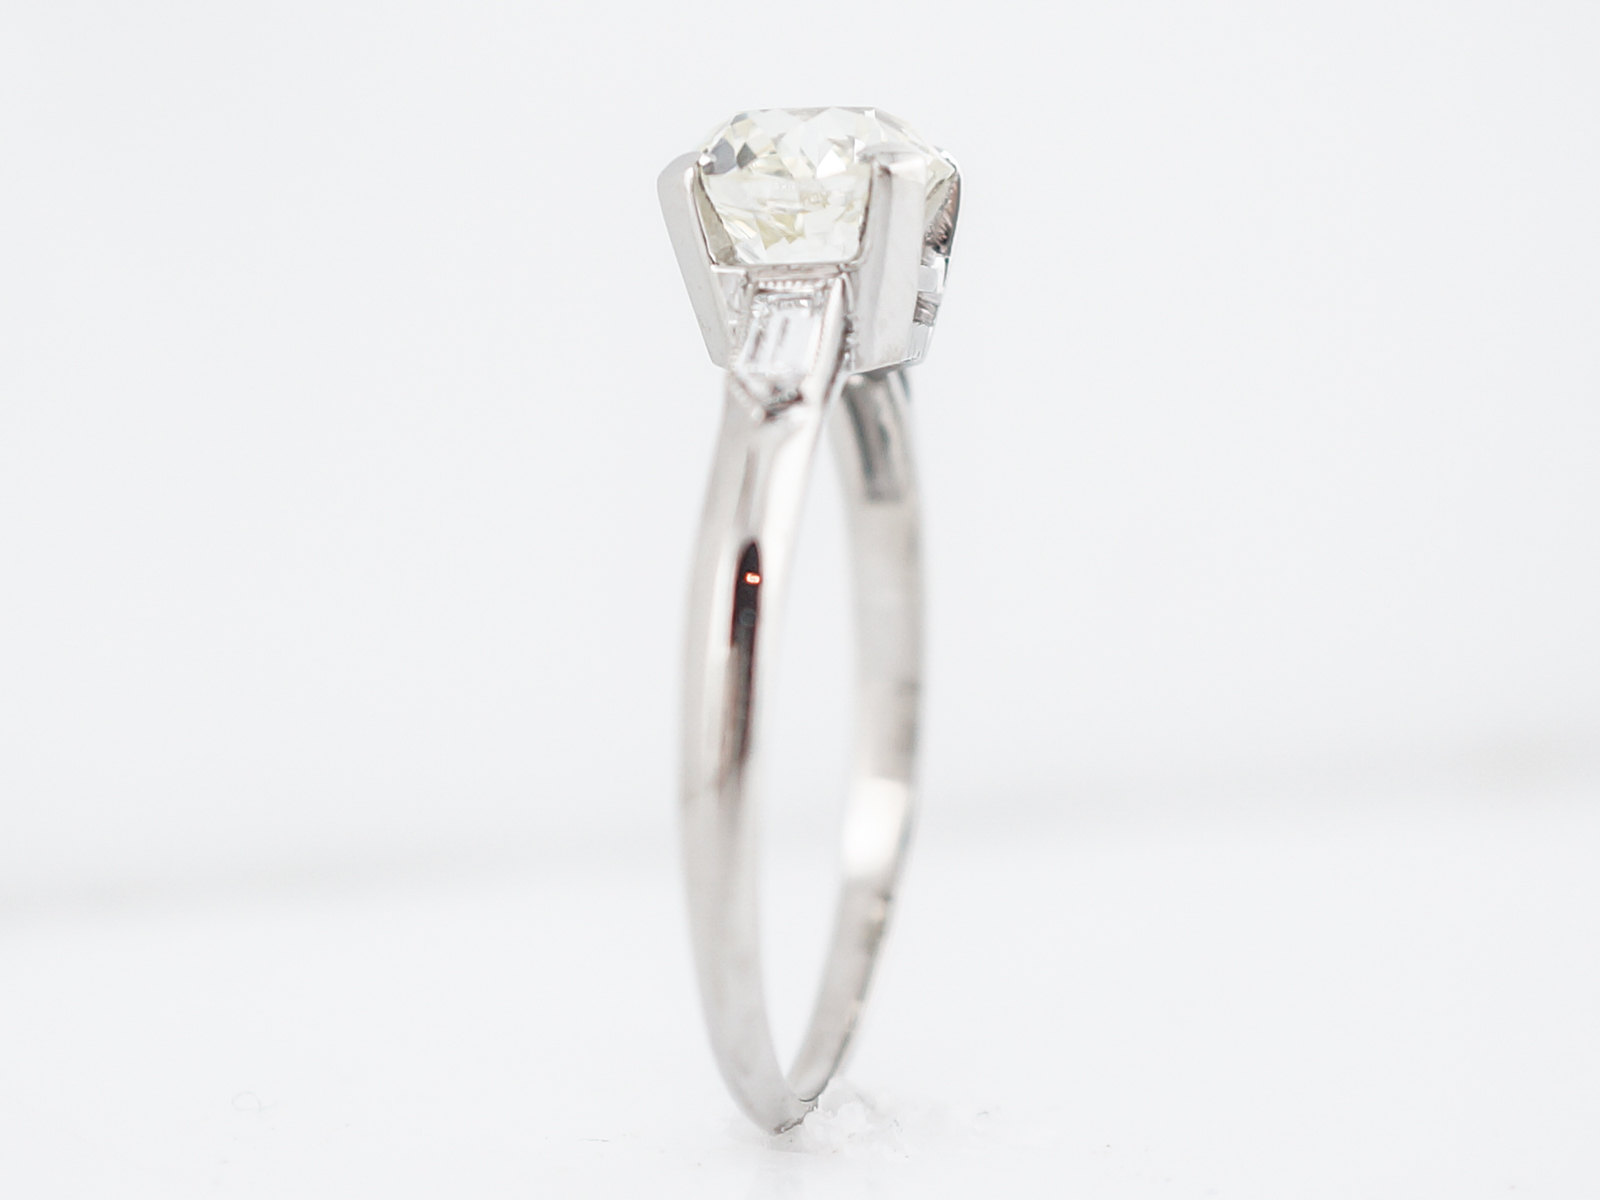 Antique Engagement Ring Art Deco 1.73 Old European Cut Diamond in Platinum -5